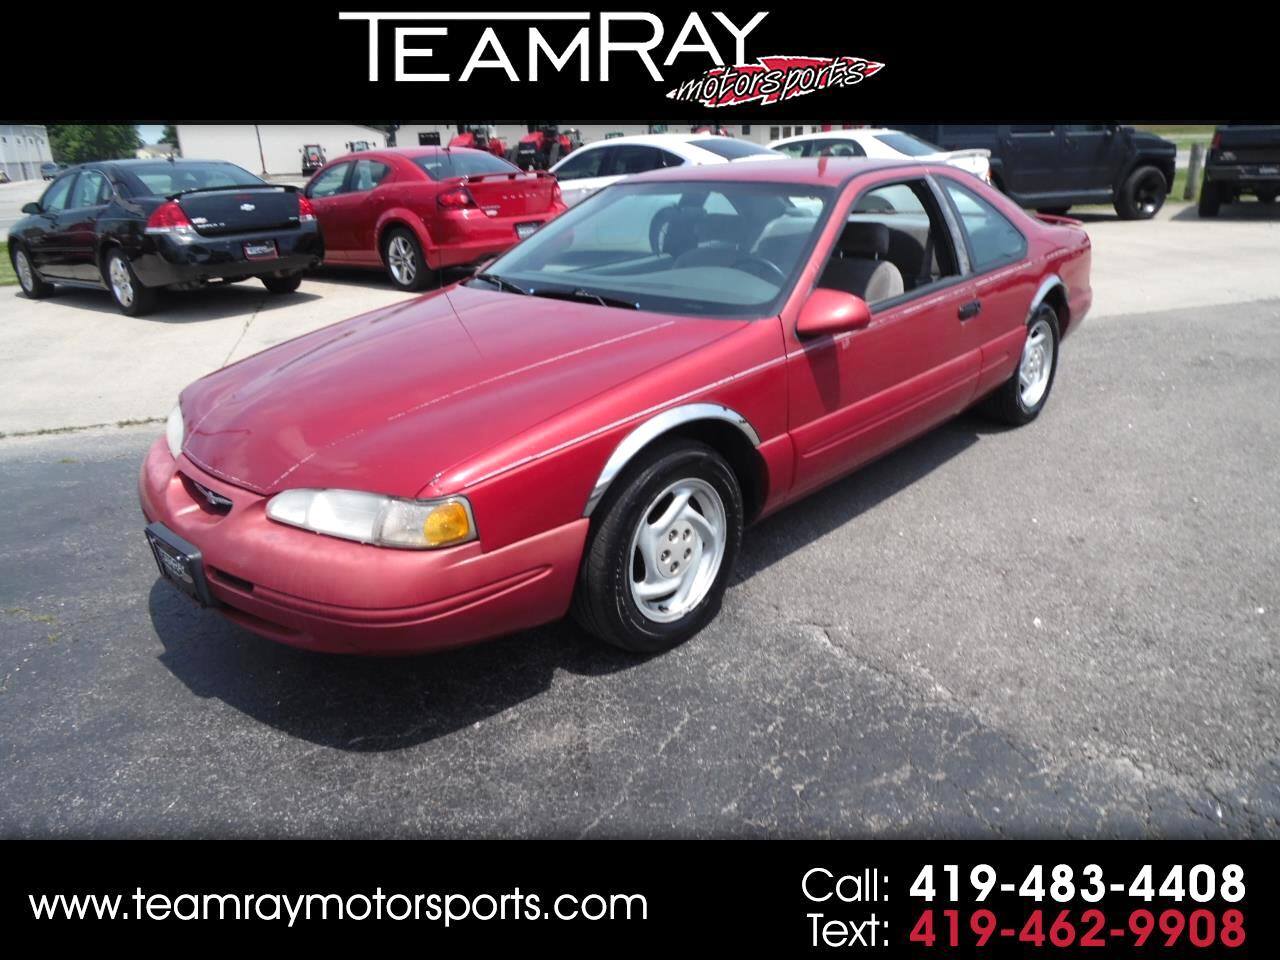 1997 Ford Thunderbird 2dr Cpe LX